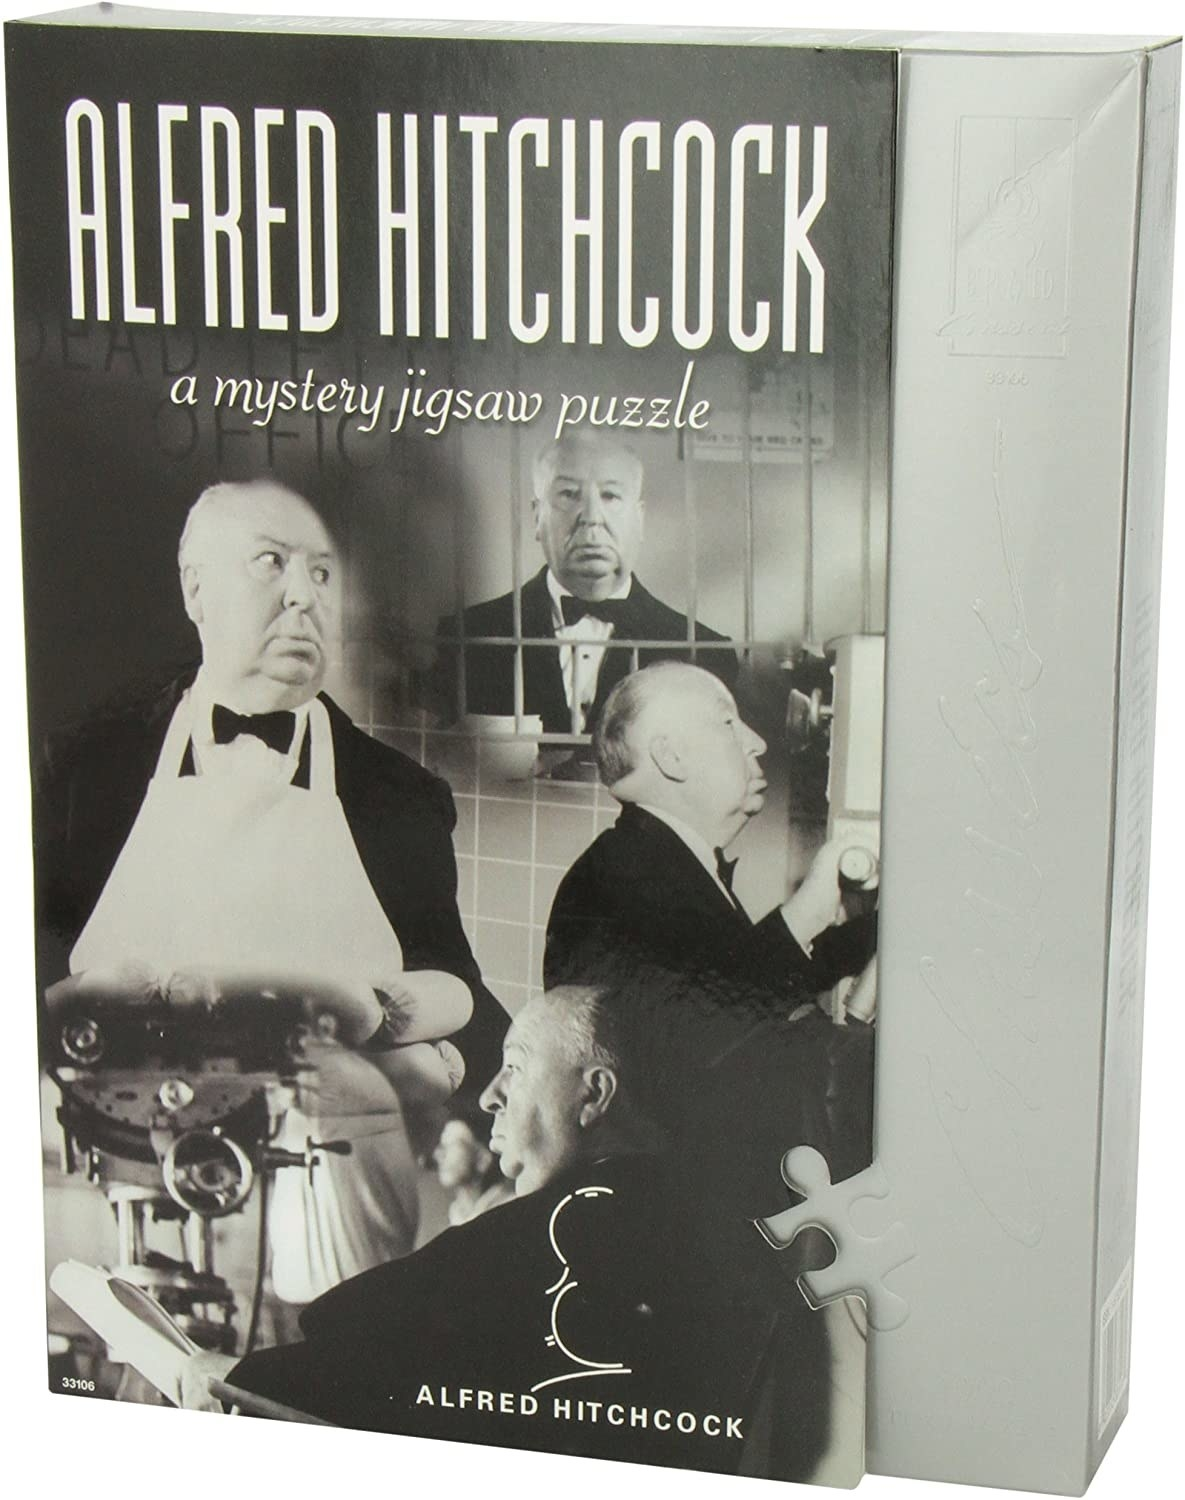 the mystery puzzle with a bunch of images of alfred hitchcock on the packaging